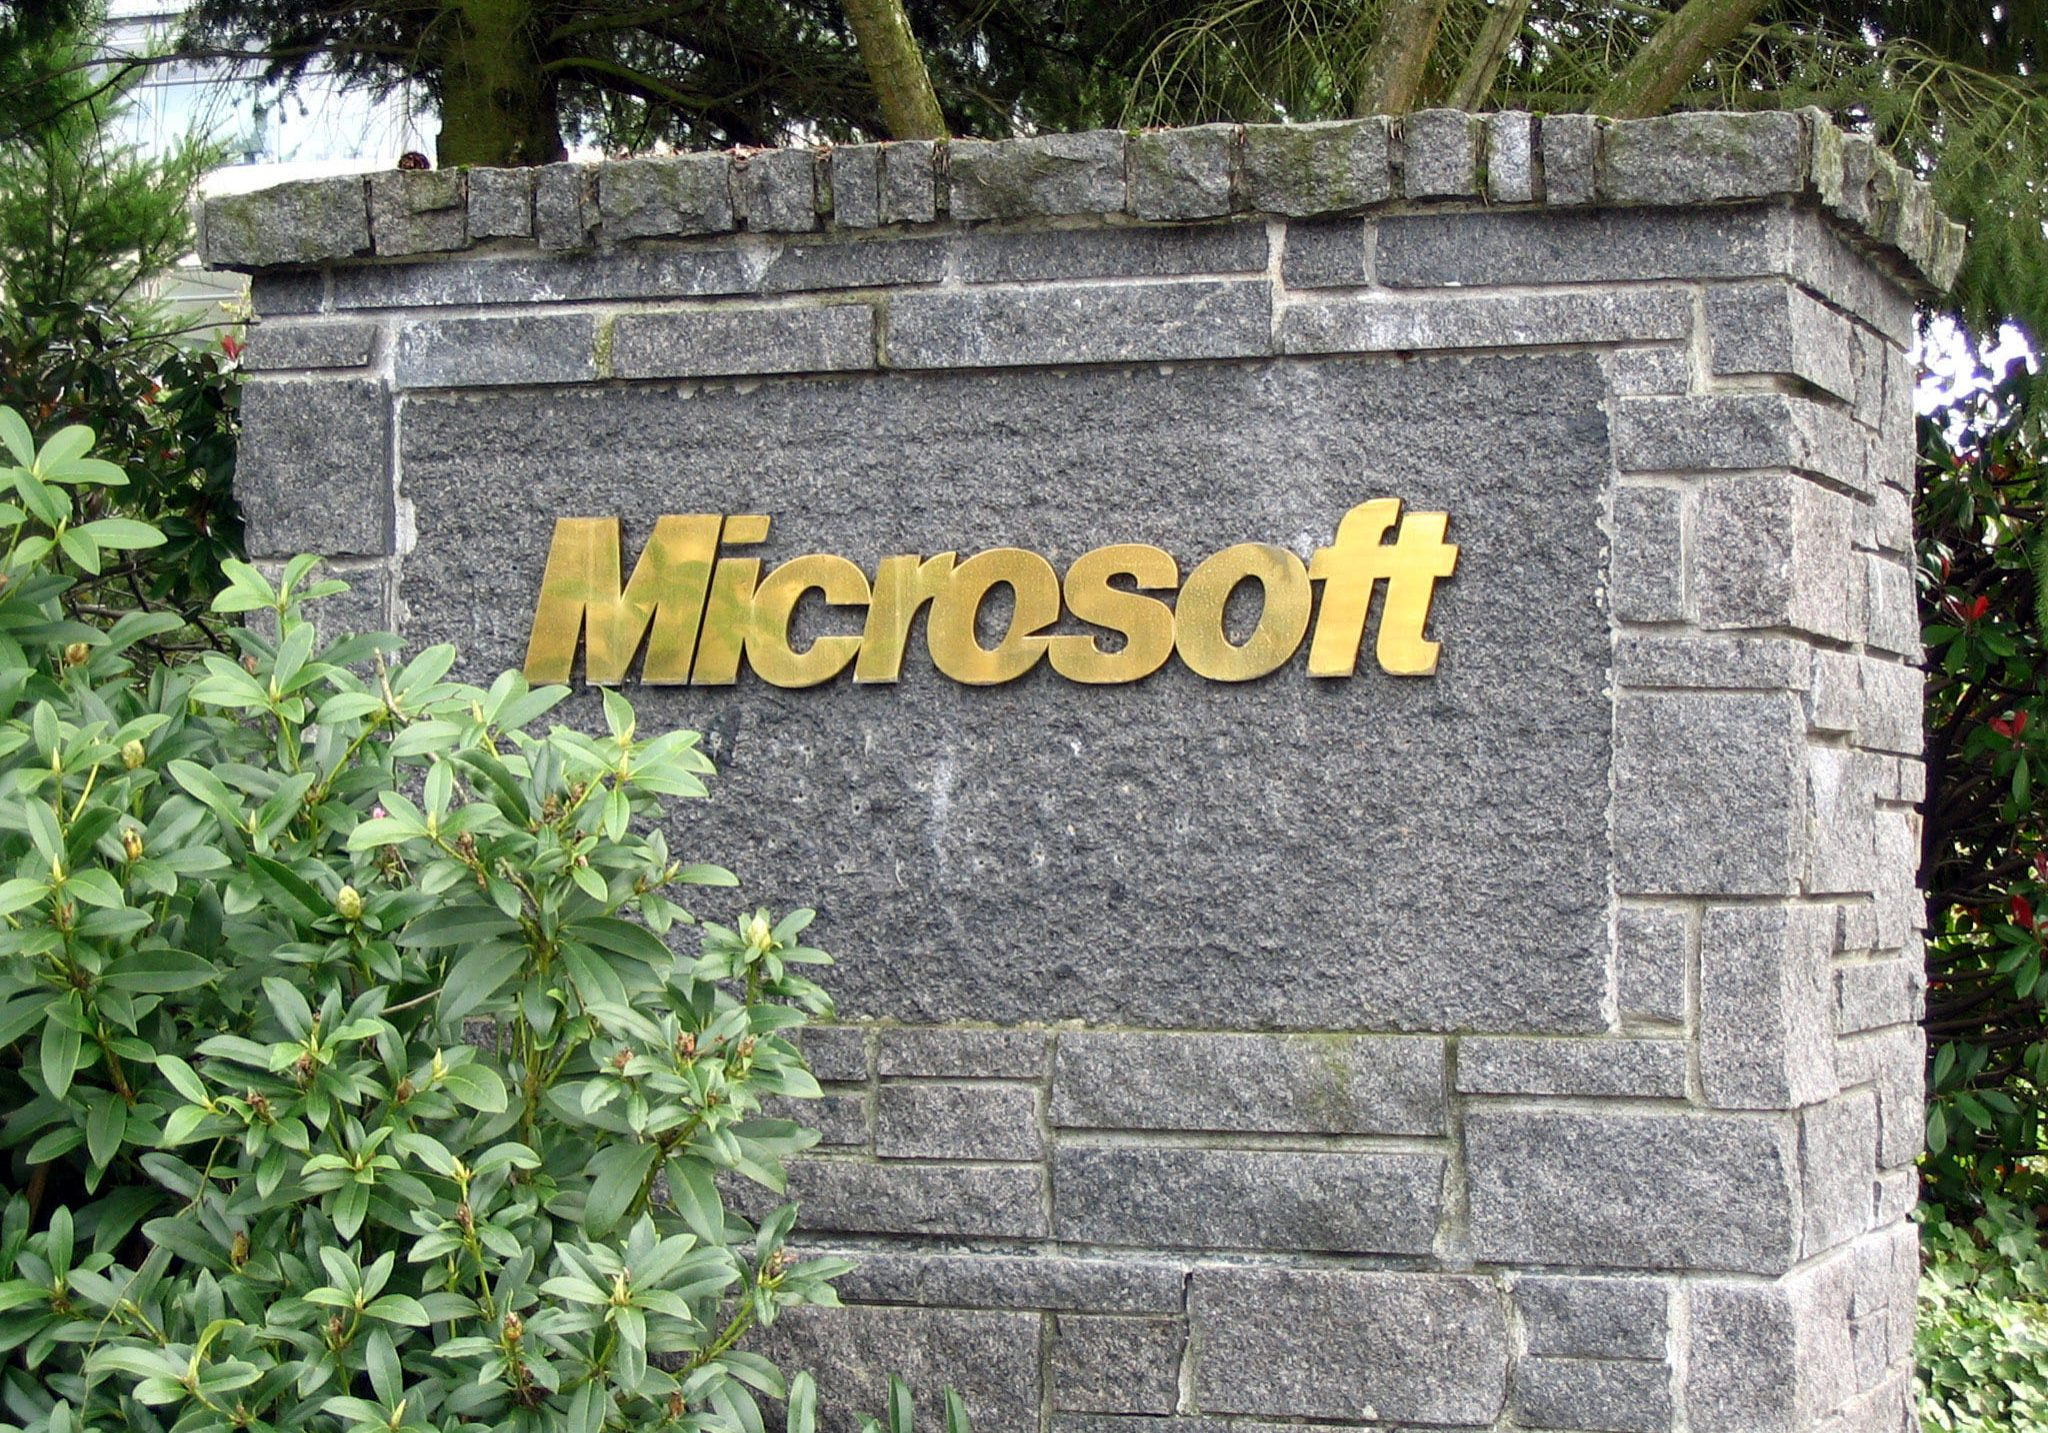 microsoft-computer-mission-statement-founders-facts-history-trivia-headquarters-public-domain_0